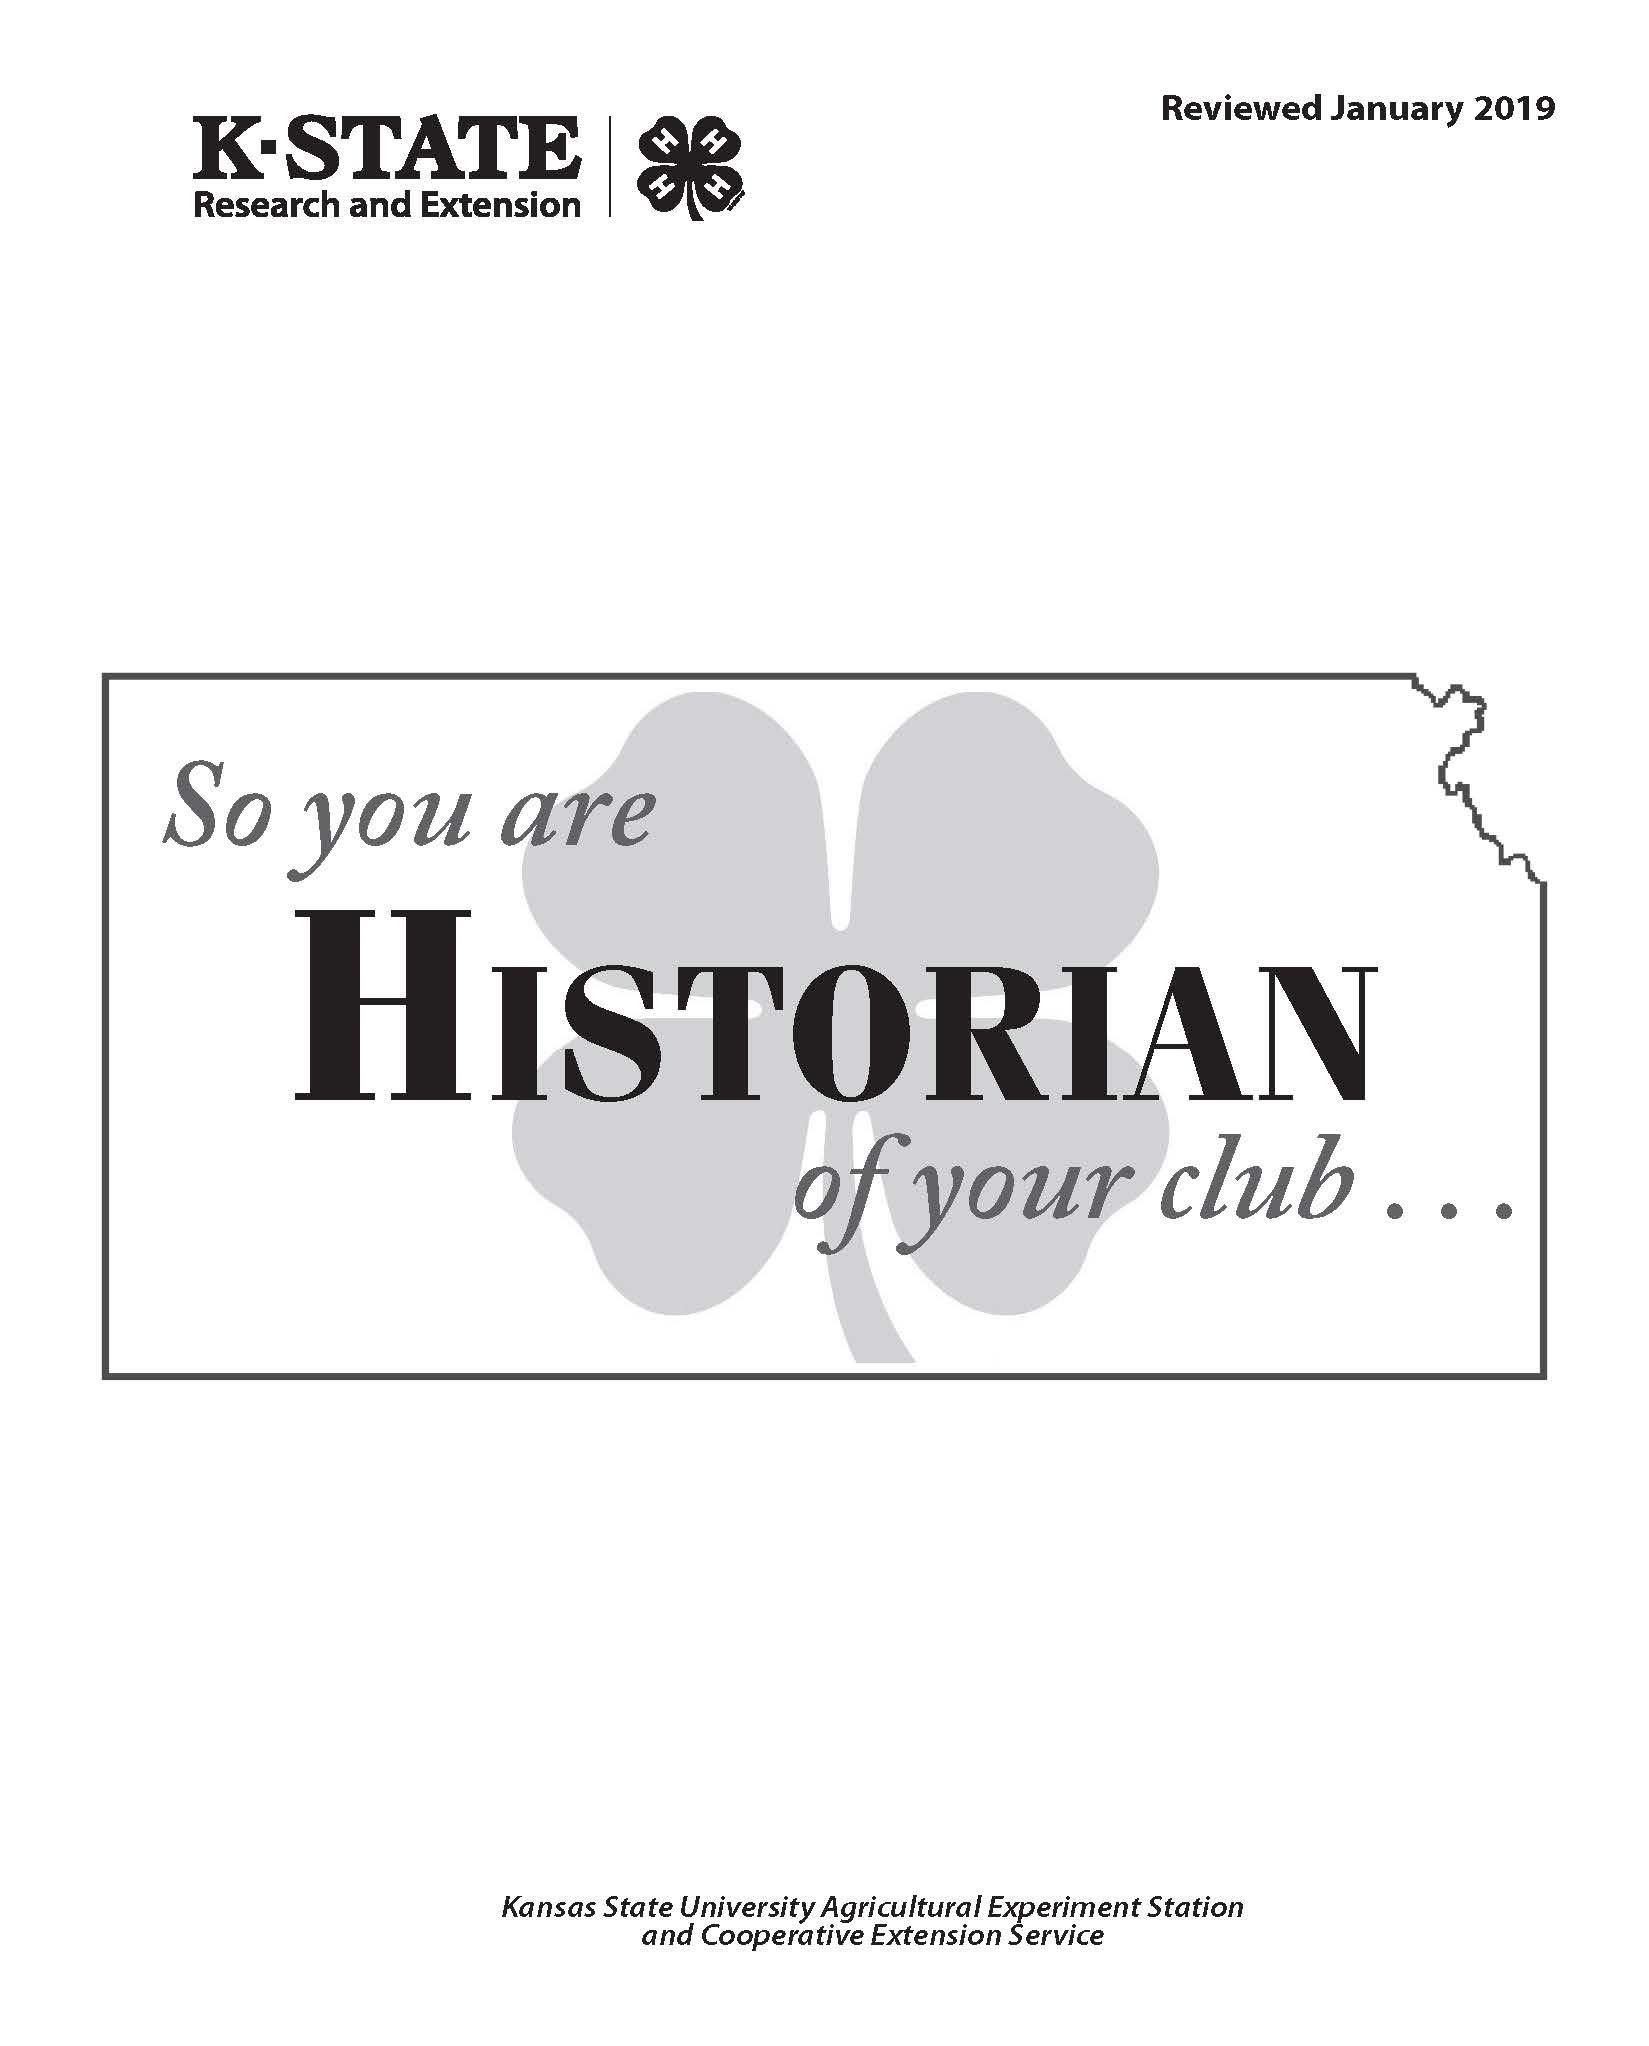 So you are the Historian of your club